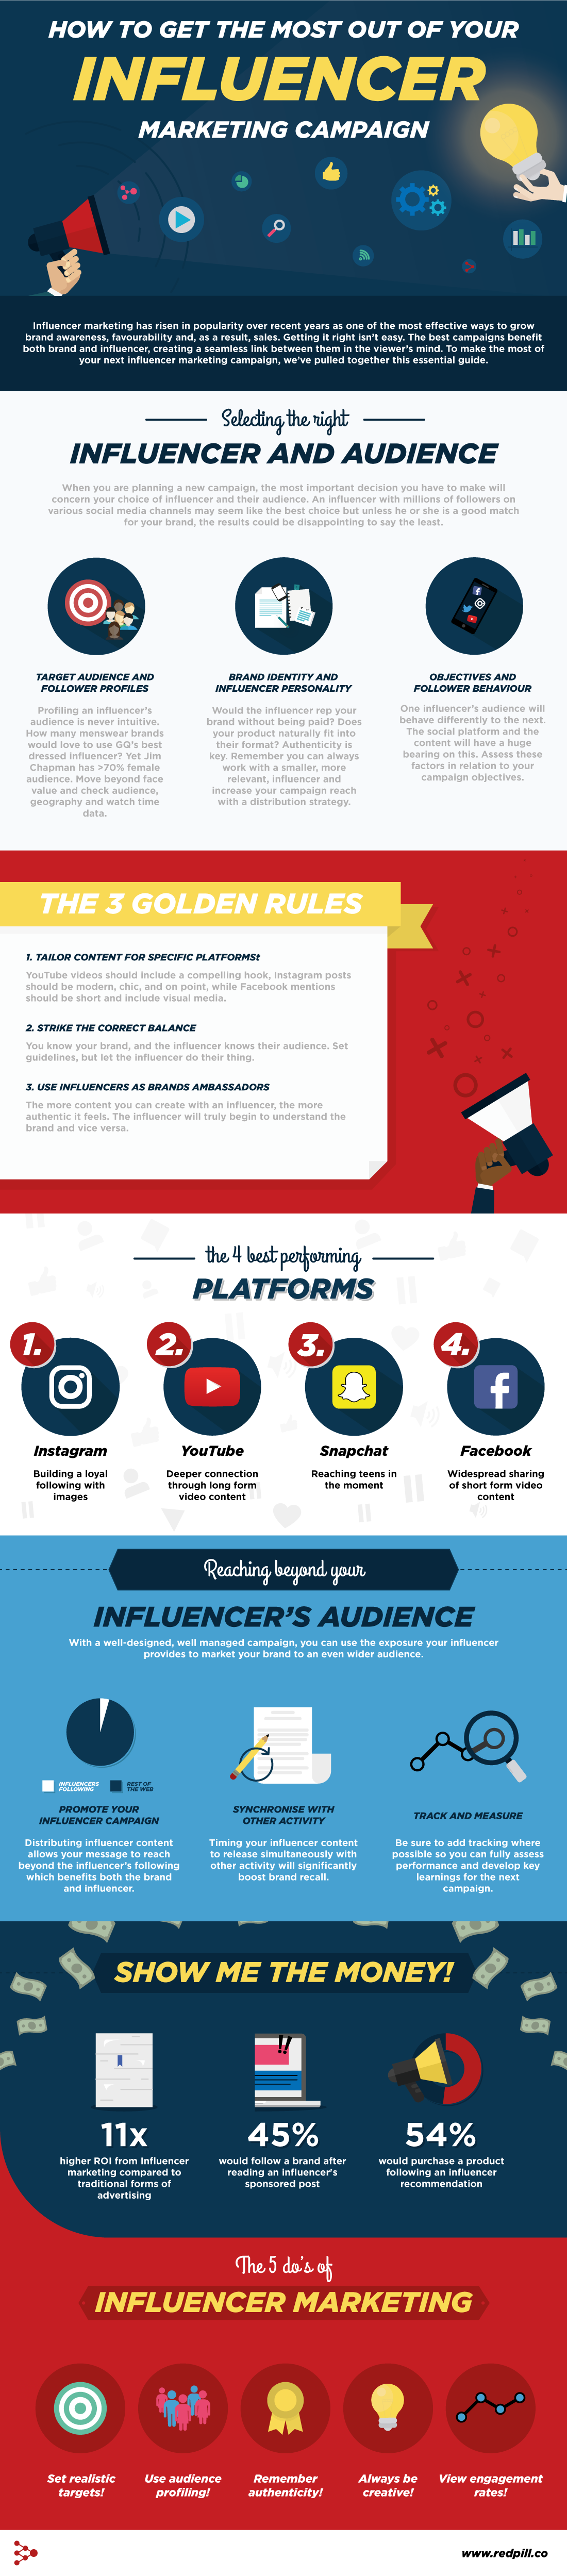 DFM Infographic Get The Most from Influencer Marketing Campaigns